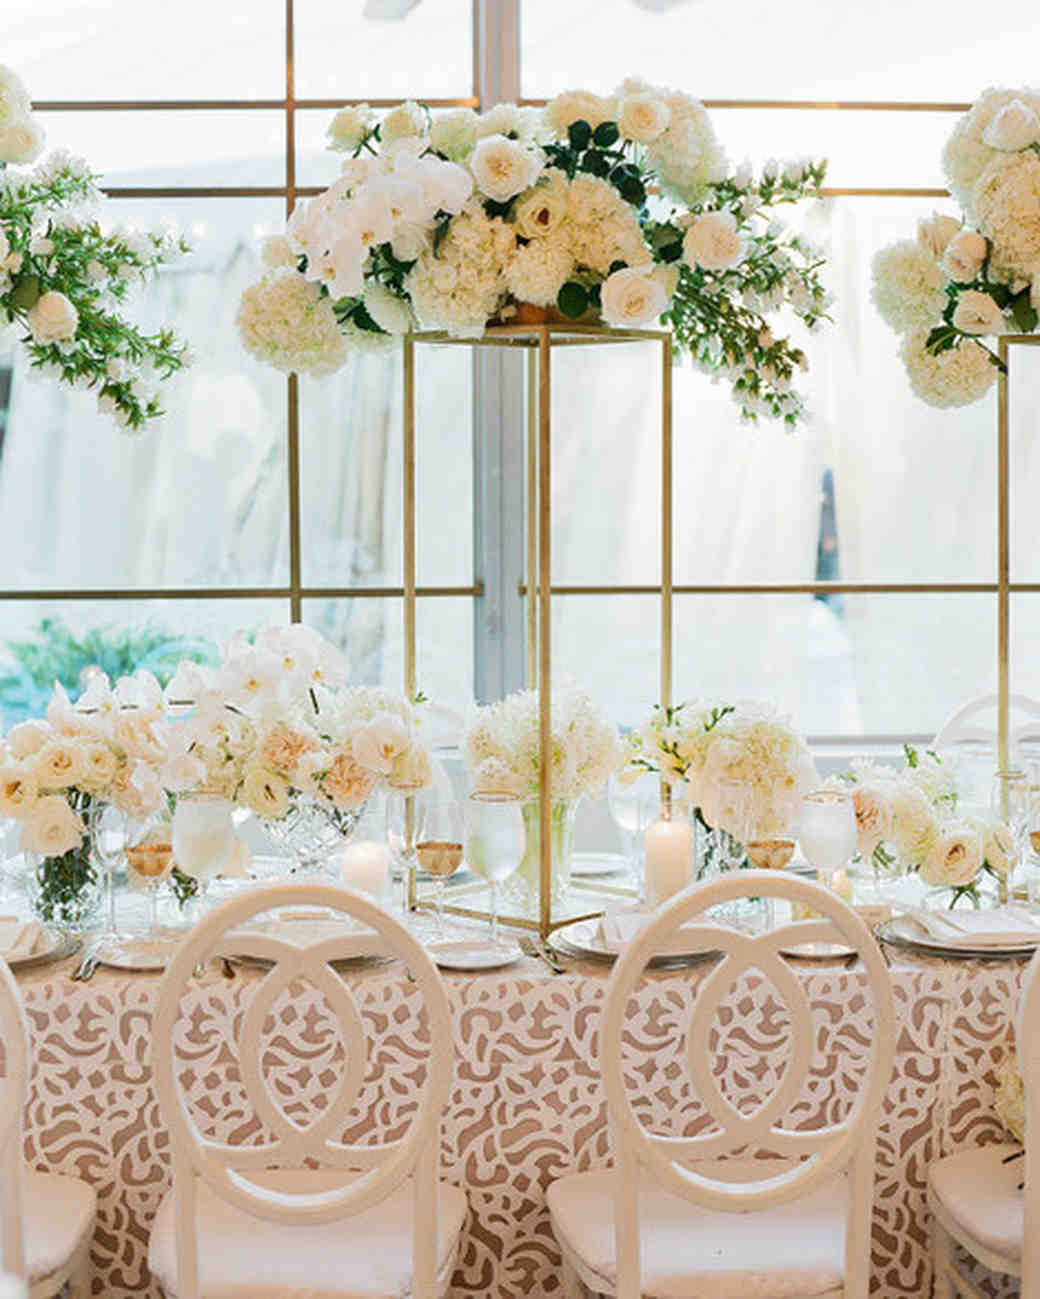 13 new wedding trends to watch for in 2018 according to planners 13 new wedding trends to watch for in 2018 according to planners martha stewart weddings junglespirit Gallery